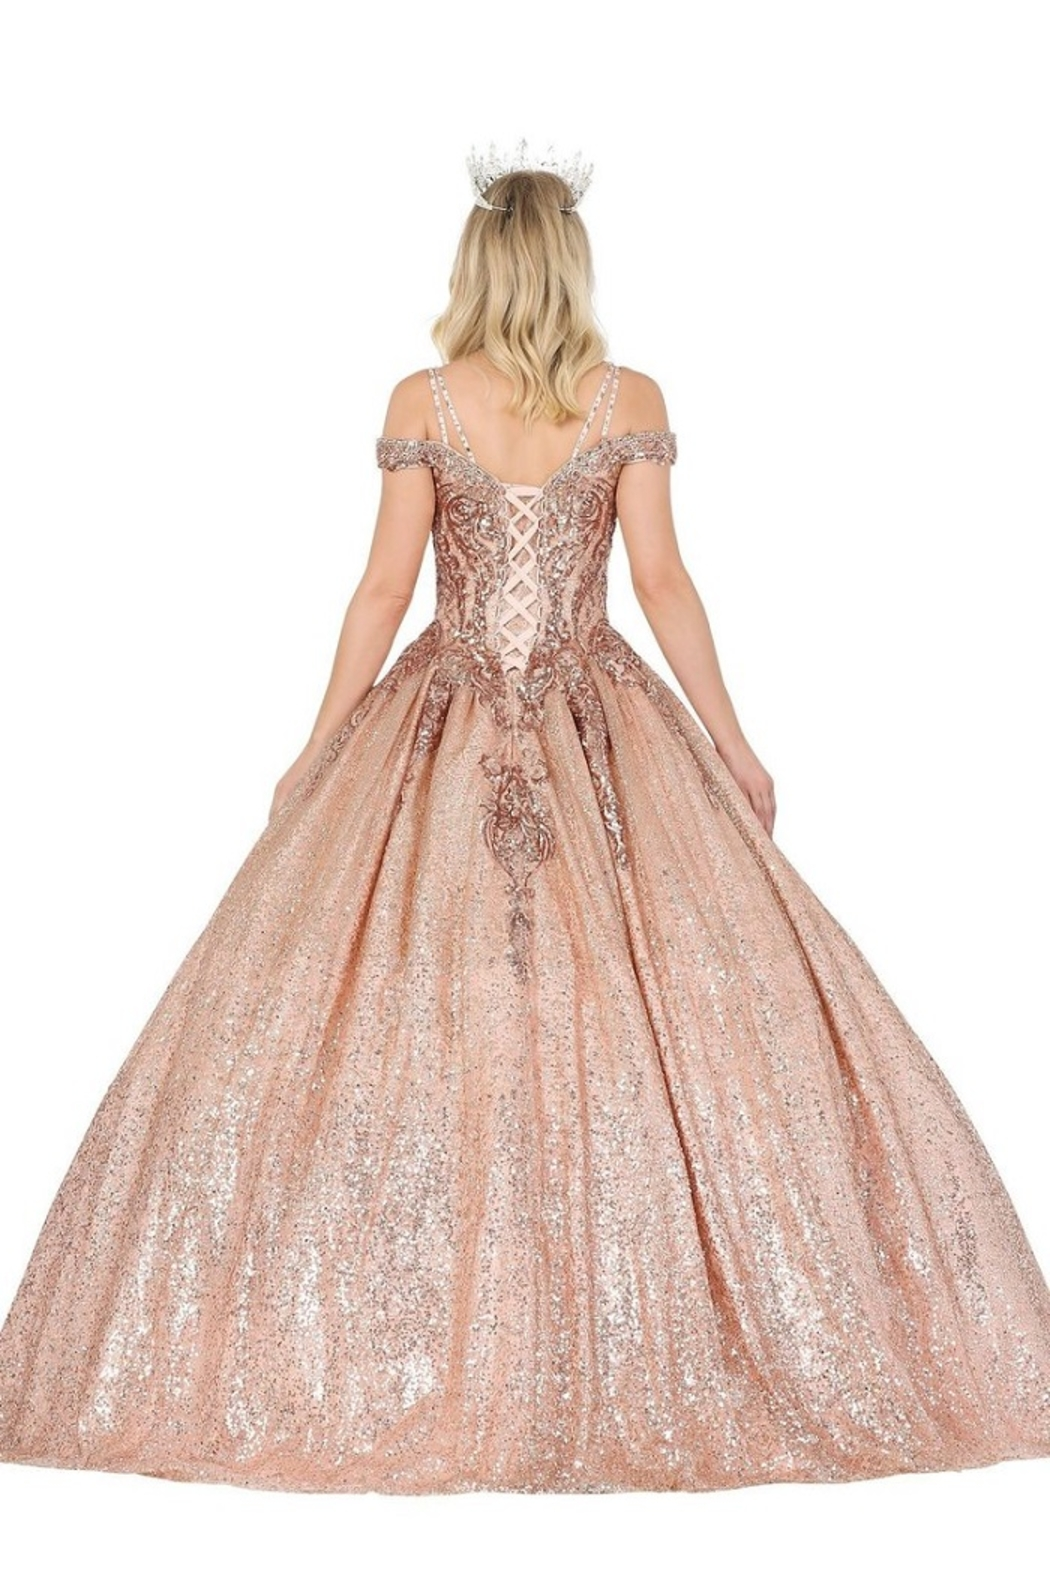 DANCING QUEEN Rose Gold Sequin Embellished Formal Ball Gown - Front Full Image